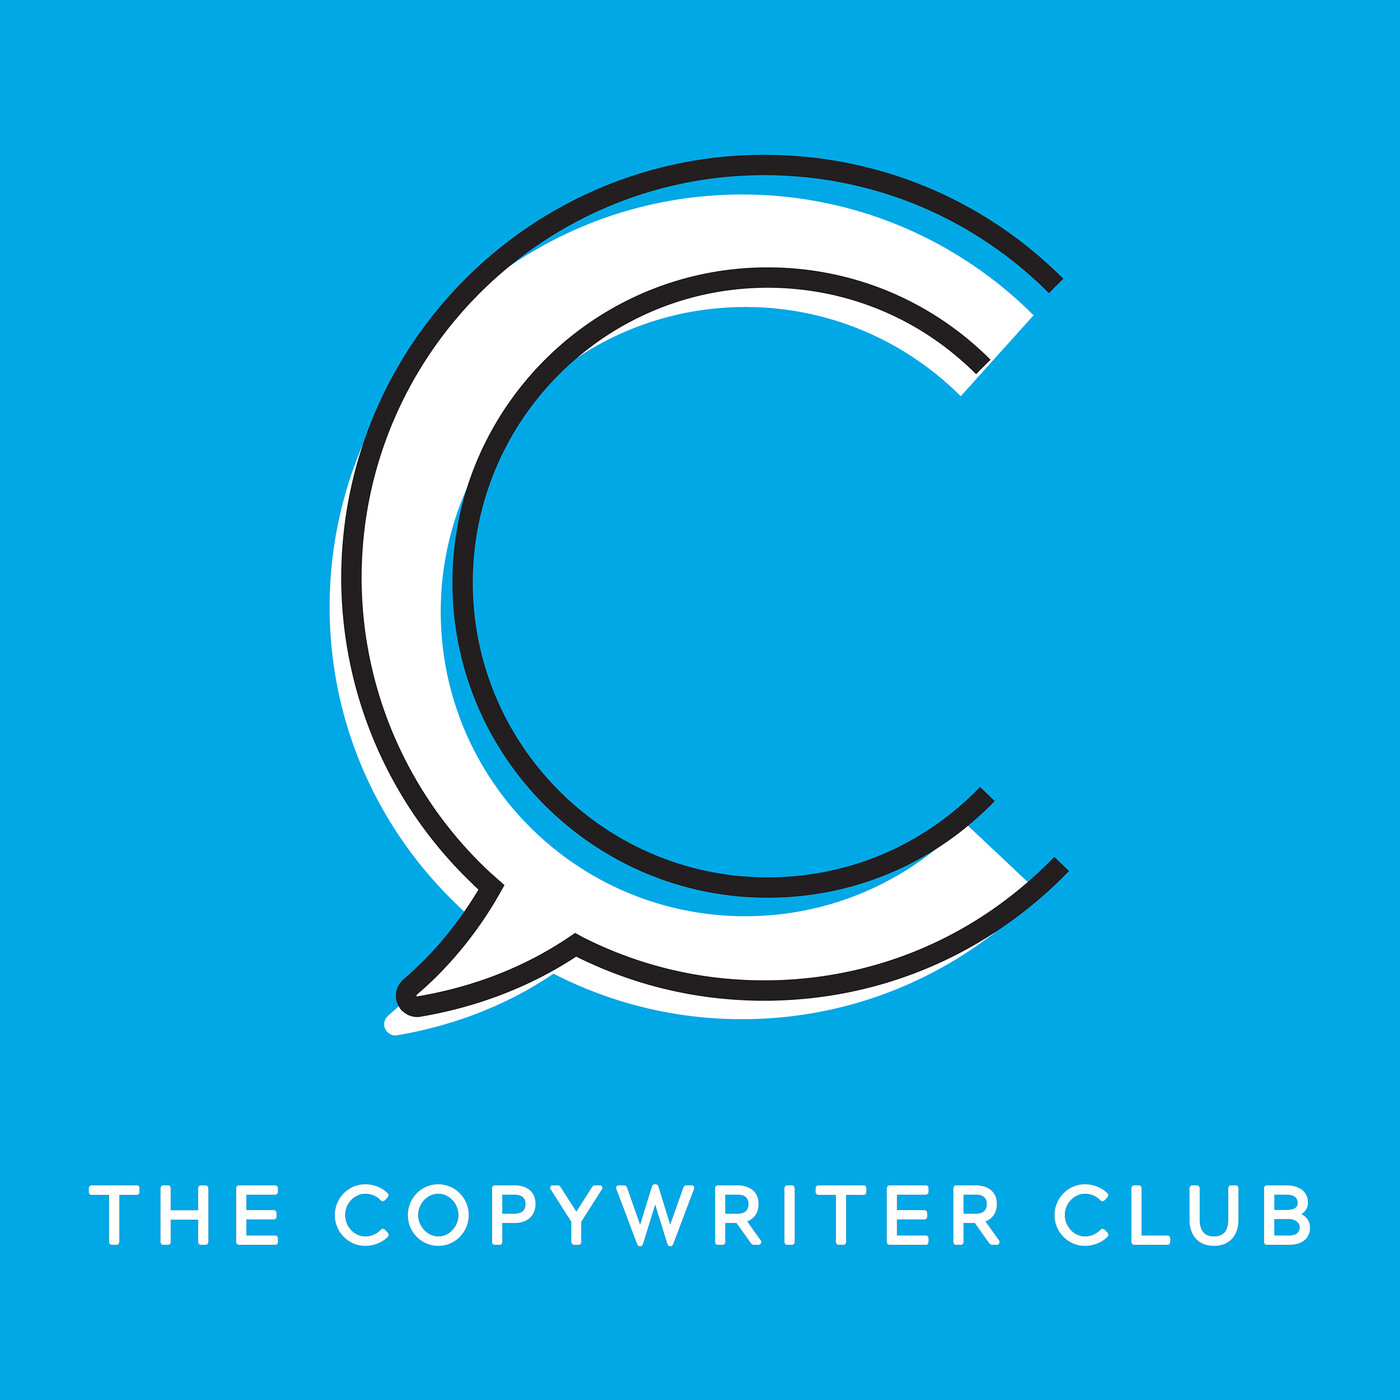 Tcc Podcast 53 The 7 Deadly Email Funnel Sins With Ryan Johnson En The Copywriter Club Podcast